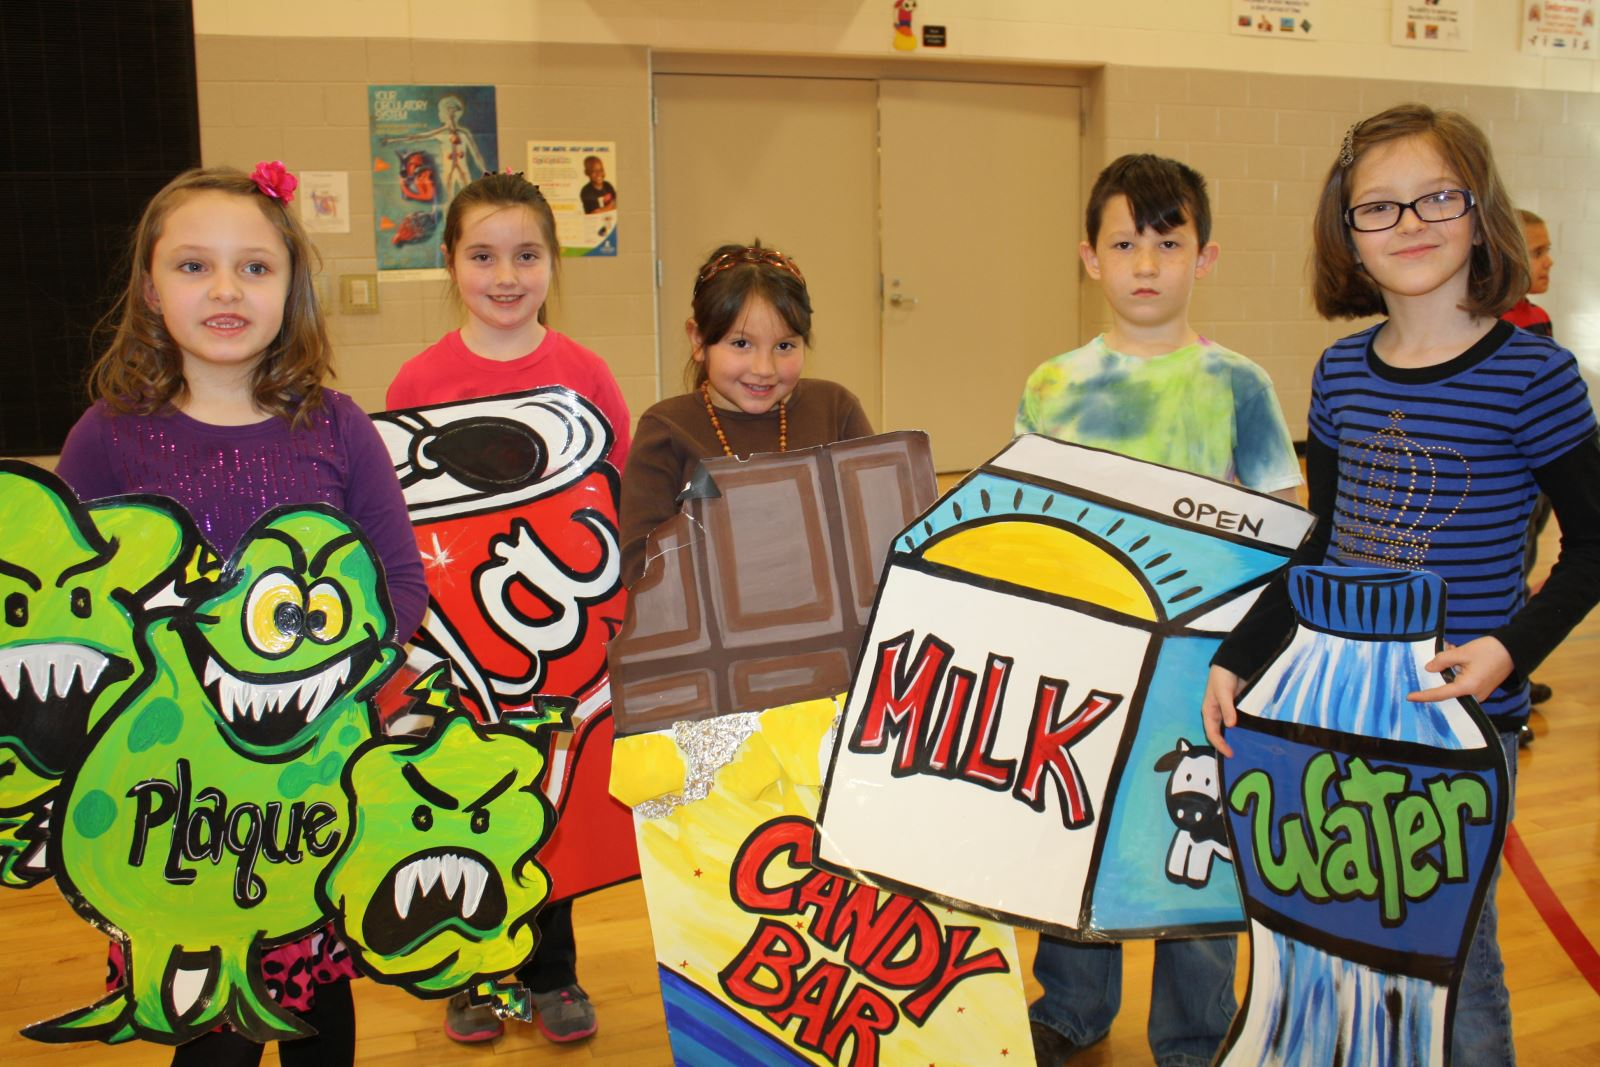 Bell elementary students participate in dental health musical plaque neveah anderson soda alyssa gregory candy bar rosalita troxell milk shawn davis water lana turner thecheapjerseys Image collections